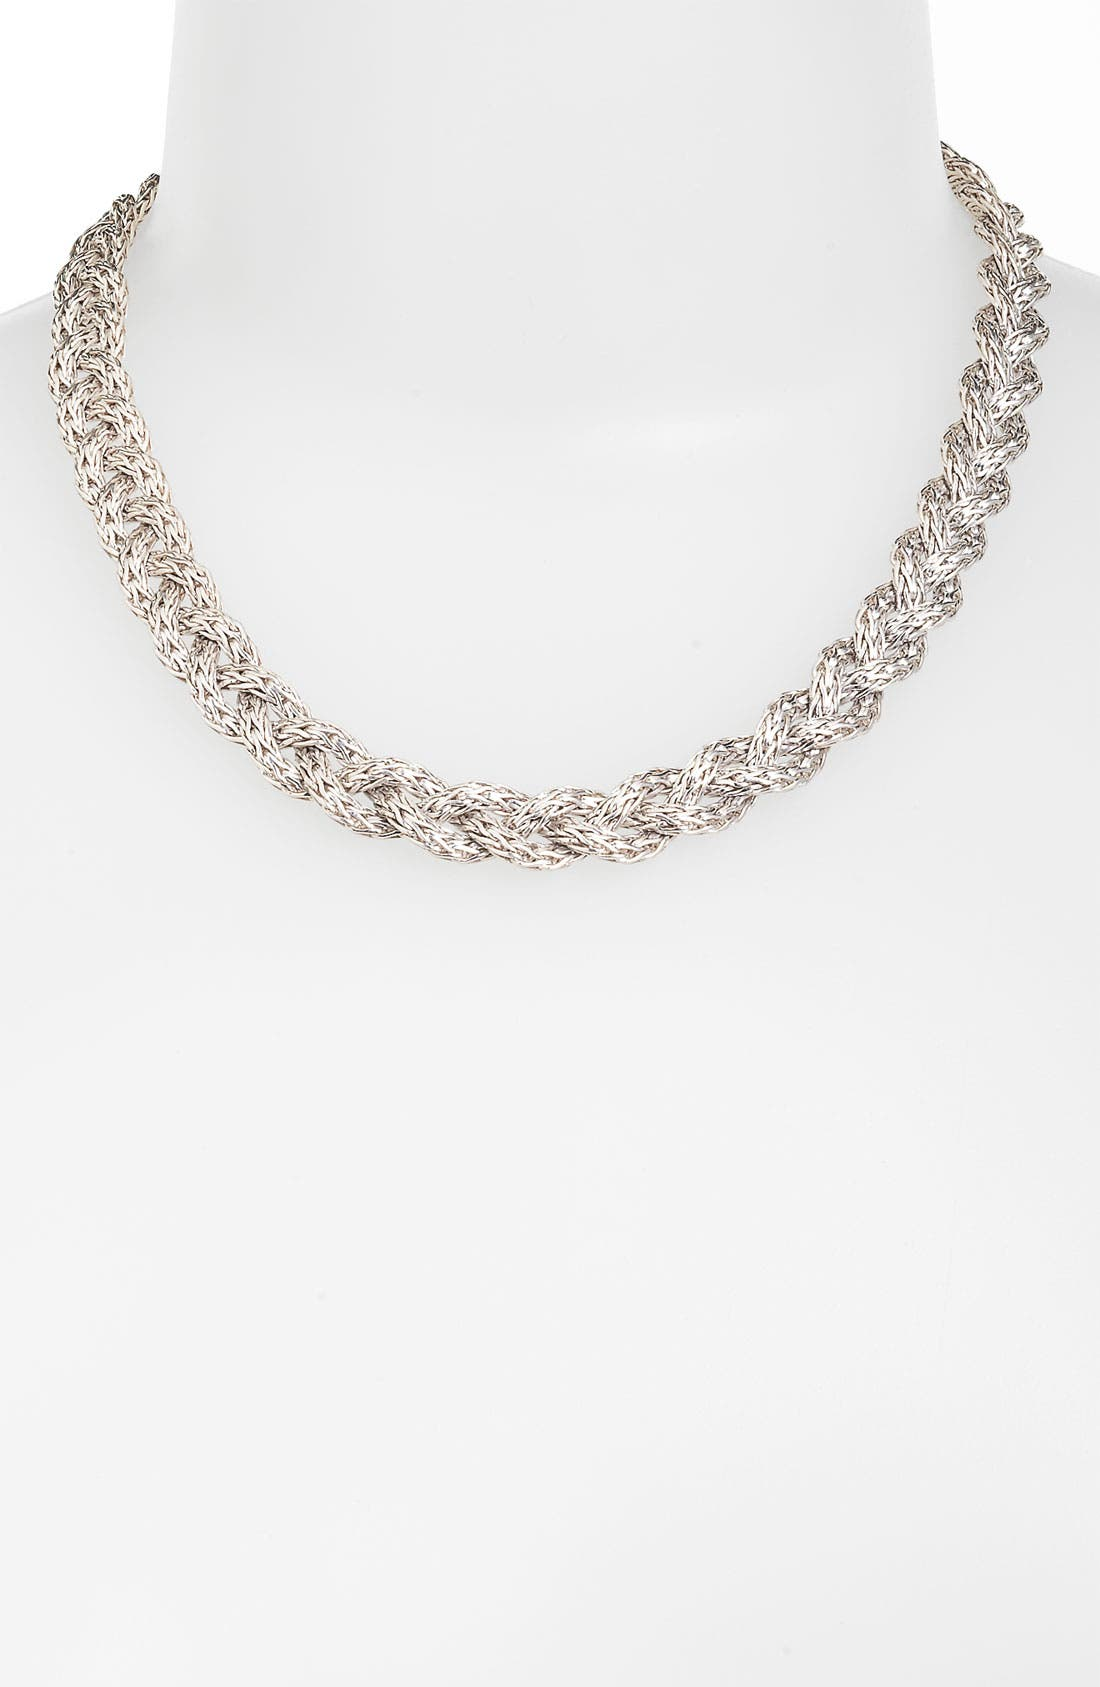 Main Image - John Hardy 'Classic Chain' Small Braided Chain Necklace